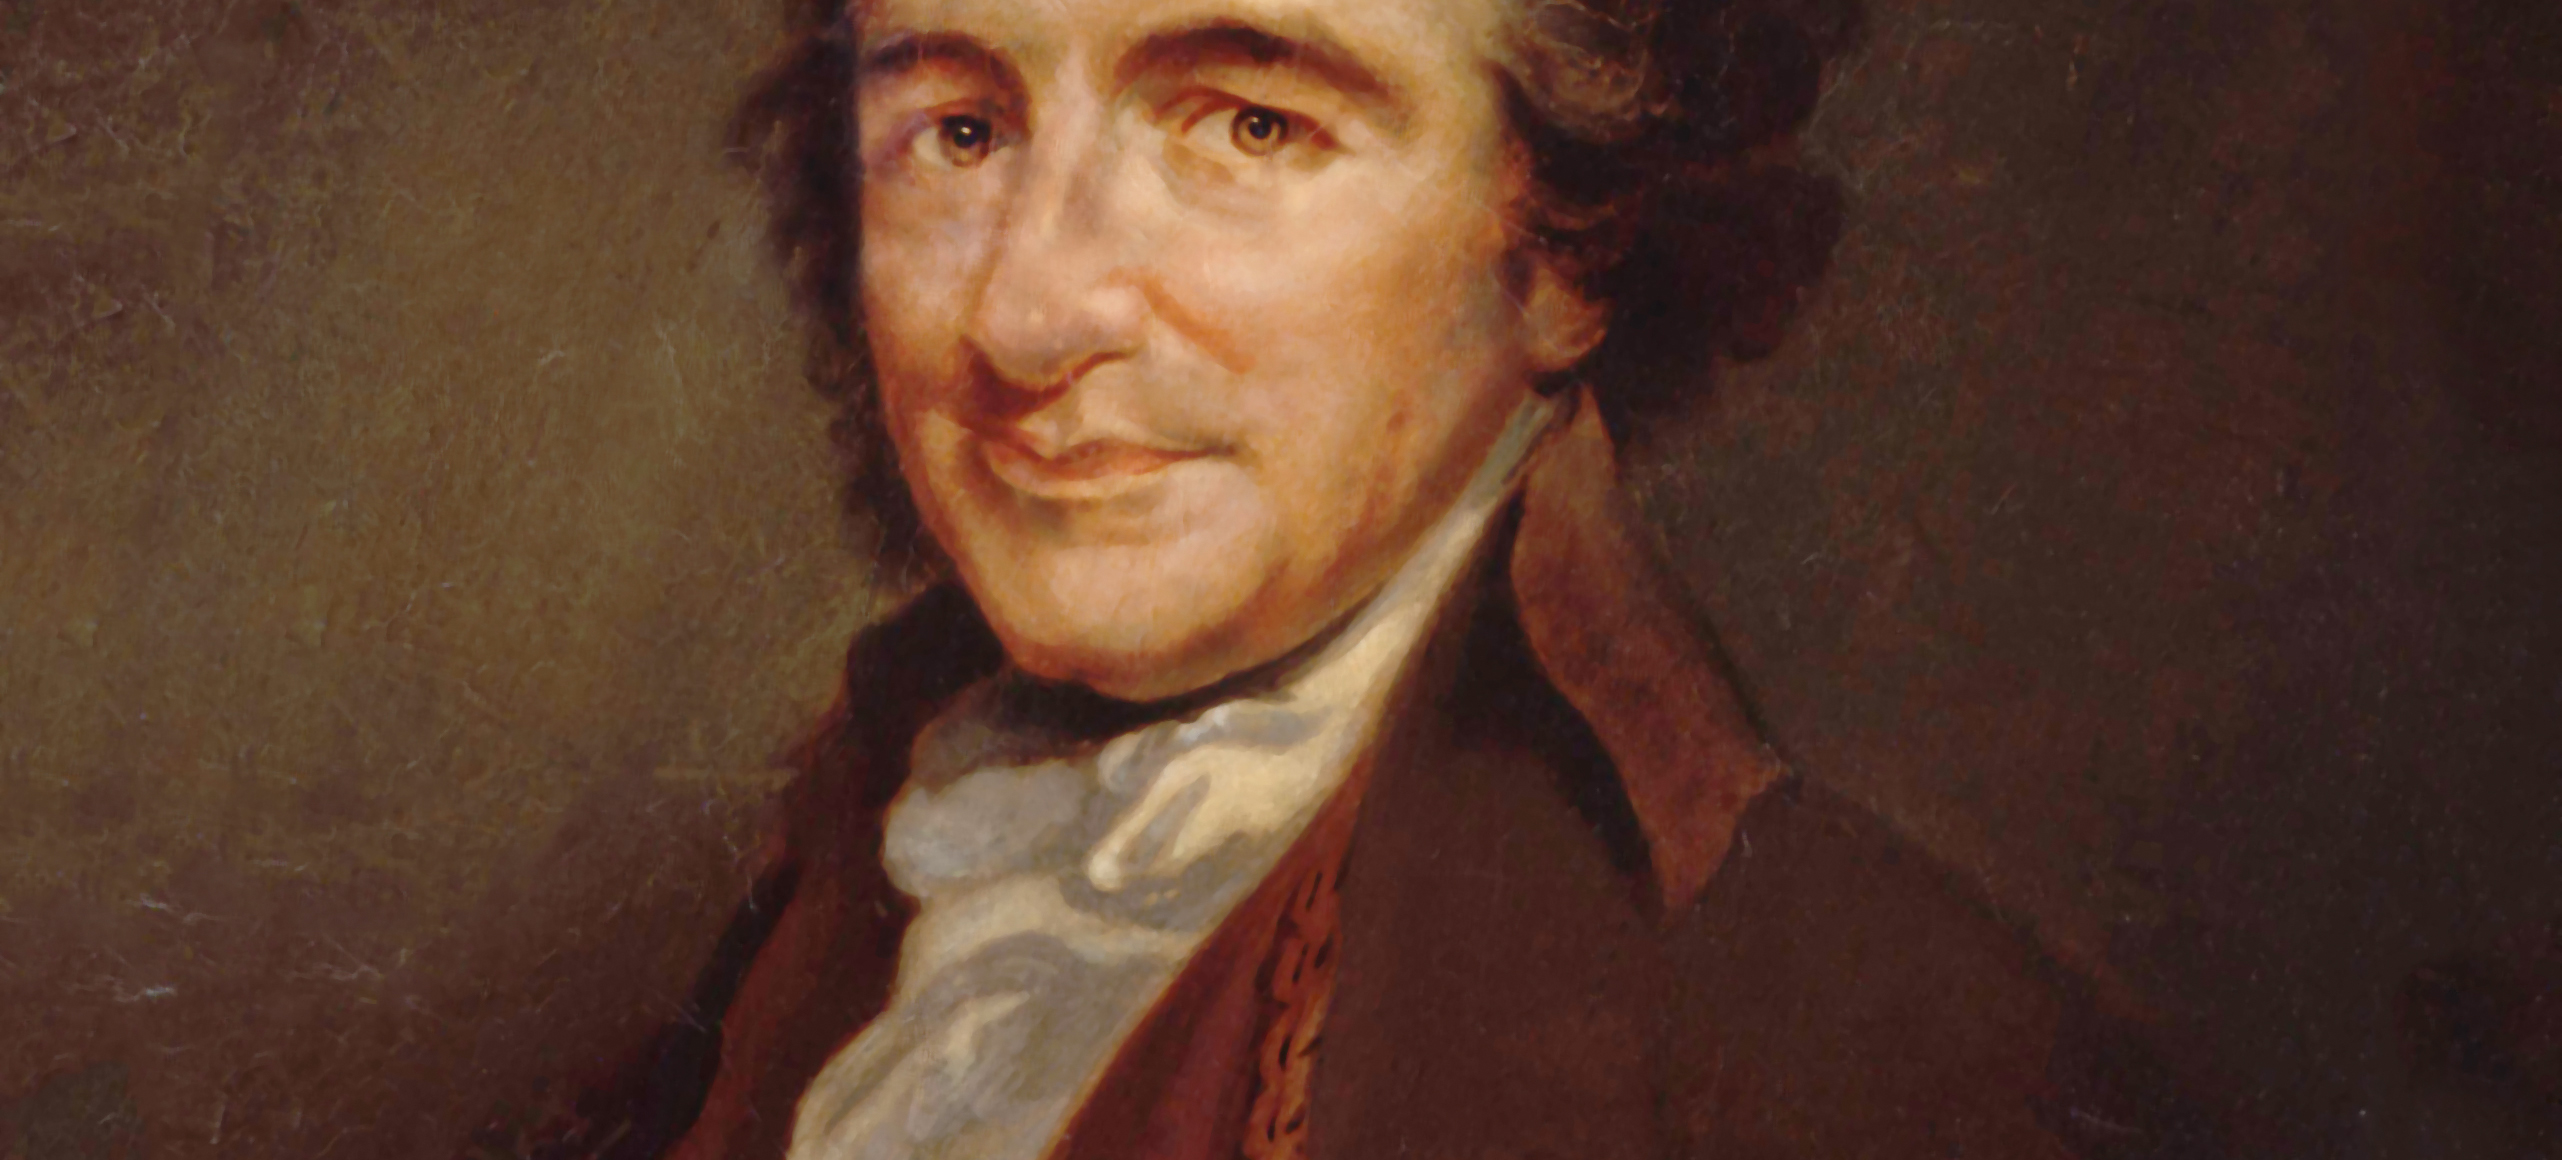 book review common sense 1776 by thomas paine